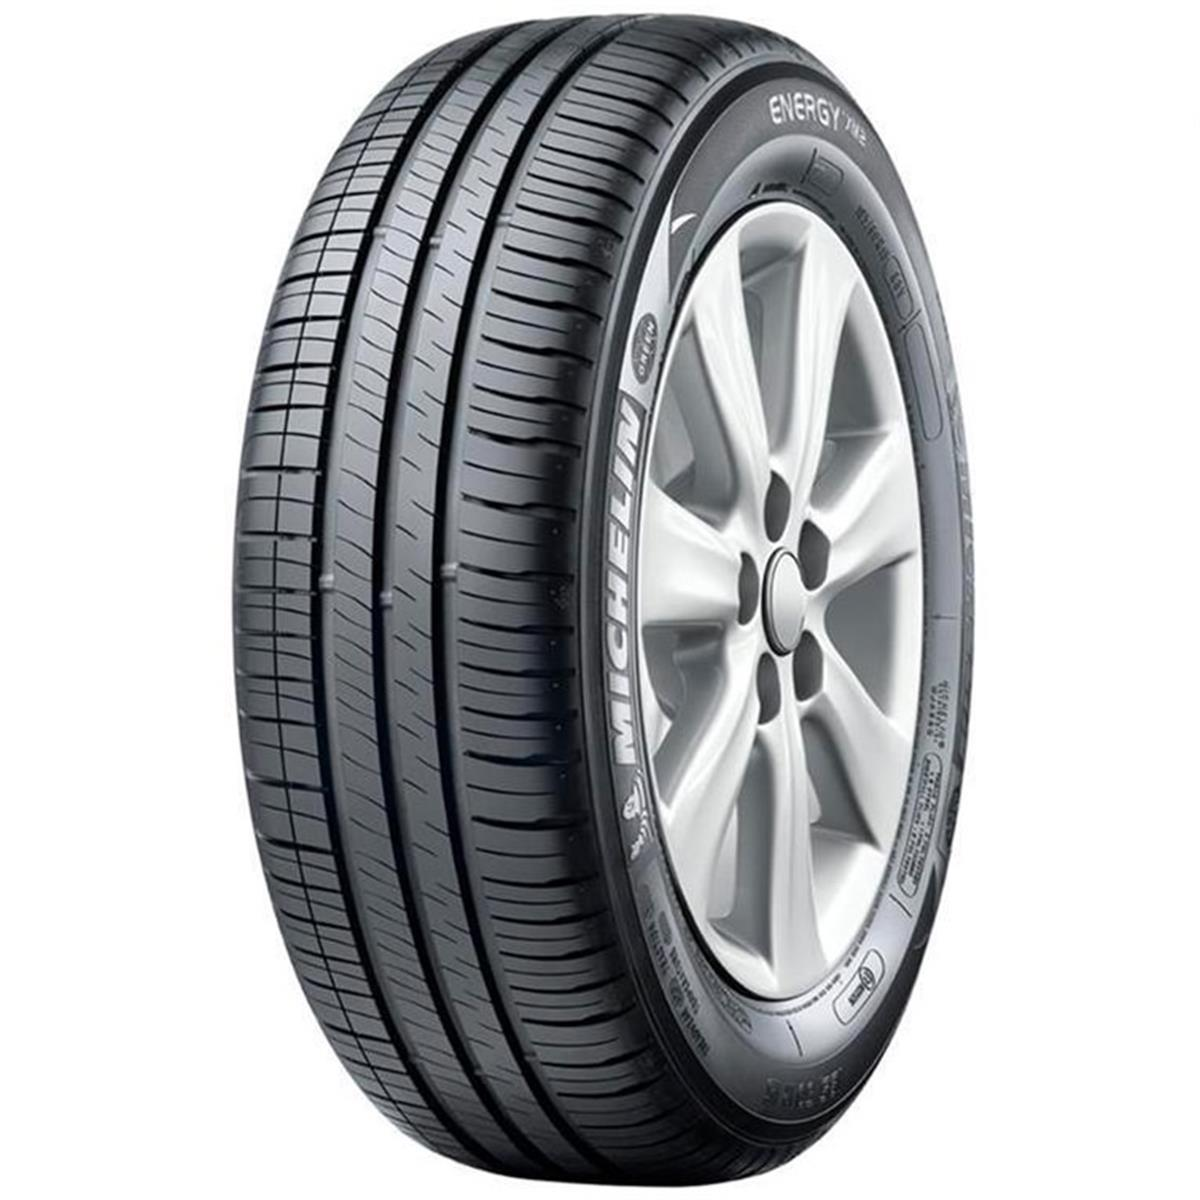 PNEU 205/65-15 99V ENERGY XM2 MICHELIN